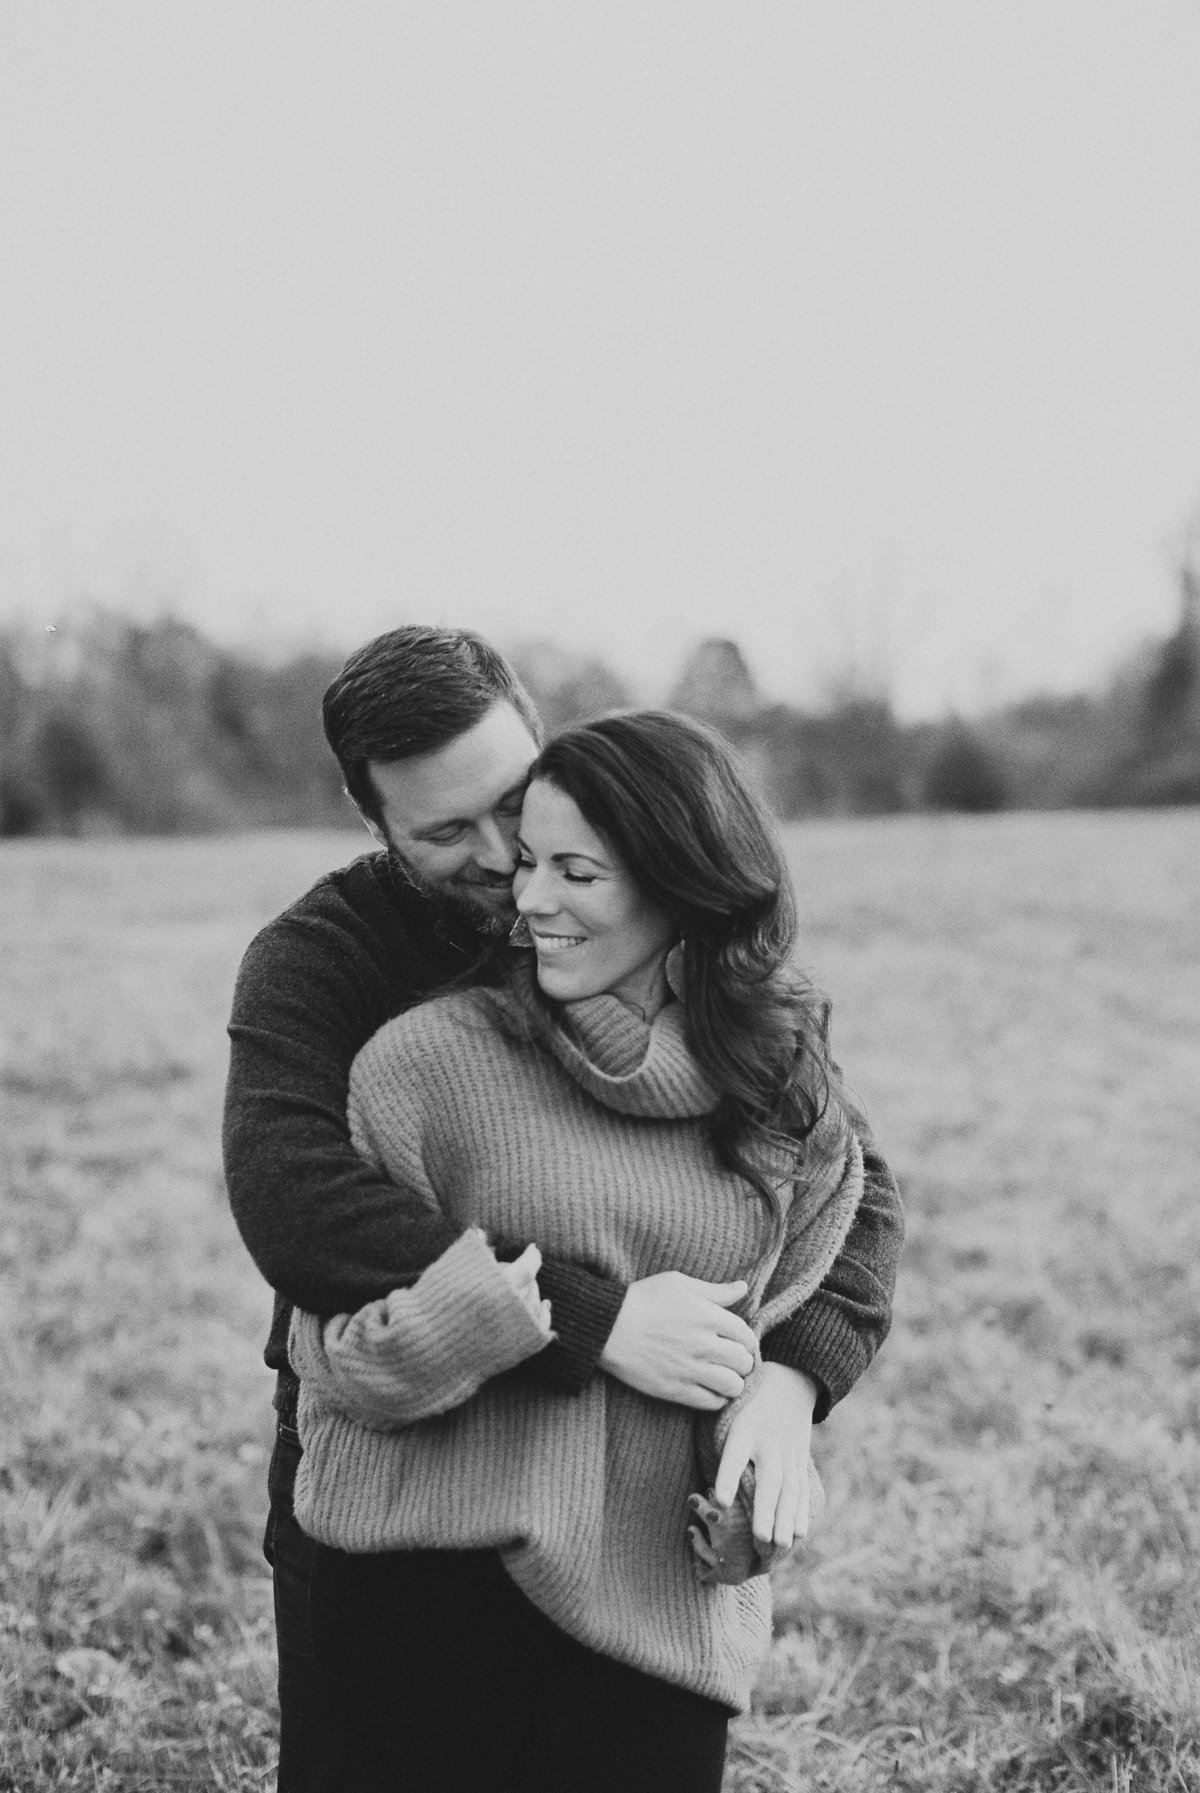 Mechanicsburg-Wedding-Photographer-Brianna-Wilbur13